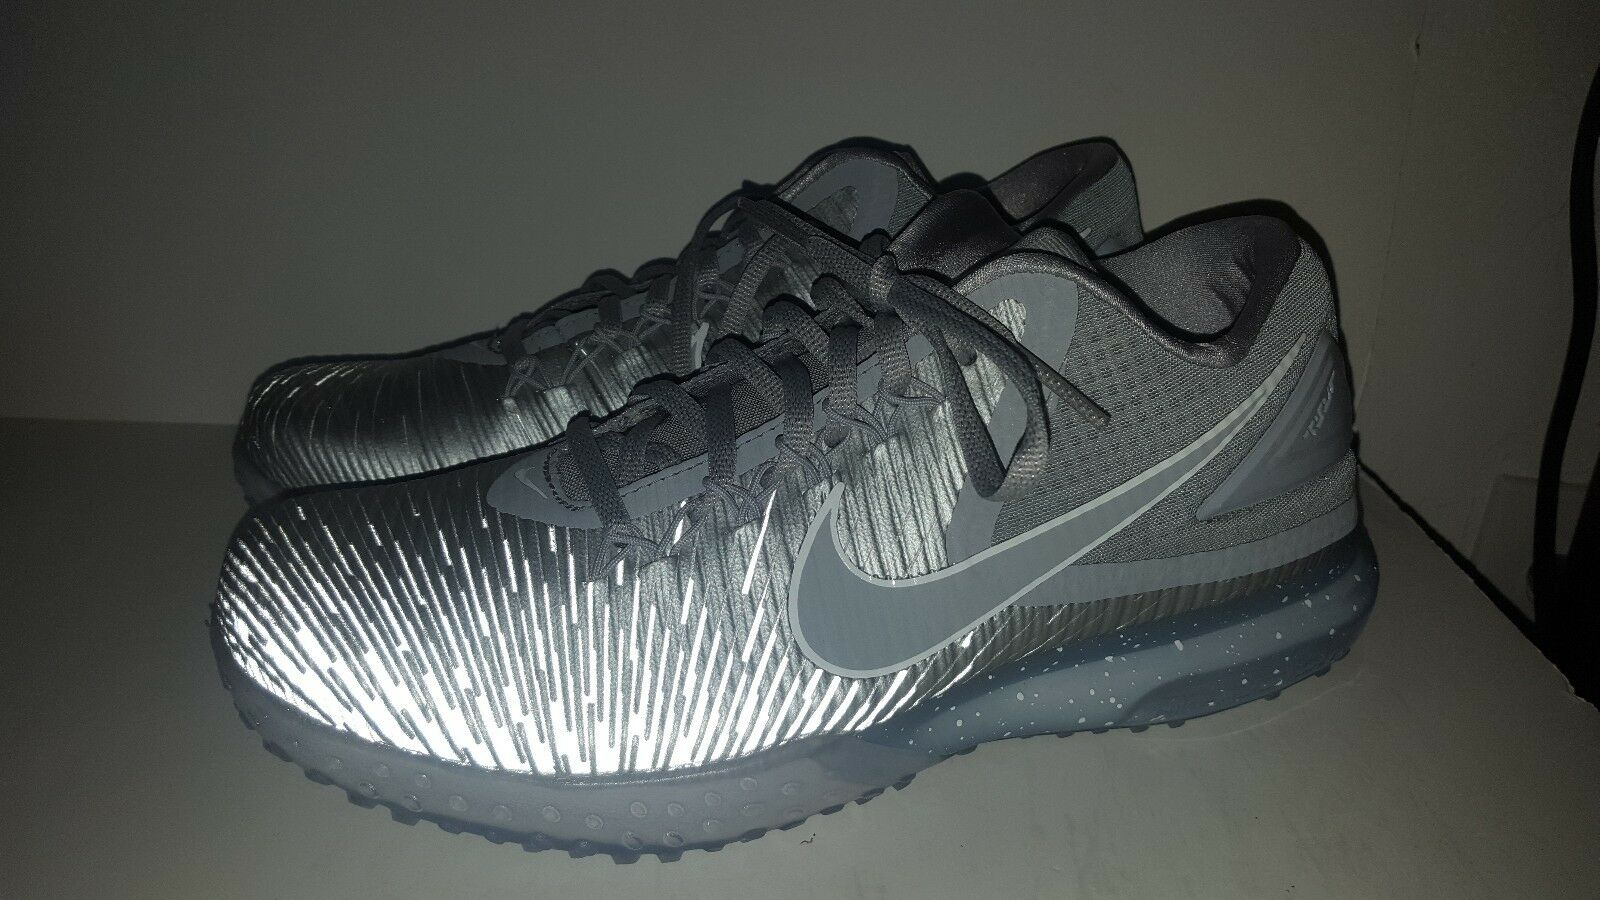 NIKE ZOOM TROUT 3 TURF BASEBALL CLEATS SHOES 844628 011 WOLF GREY (MEN'S 8